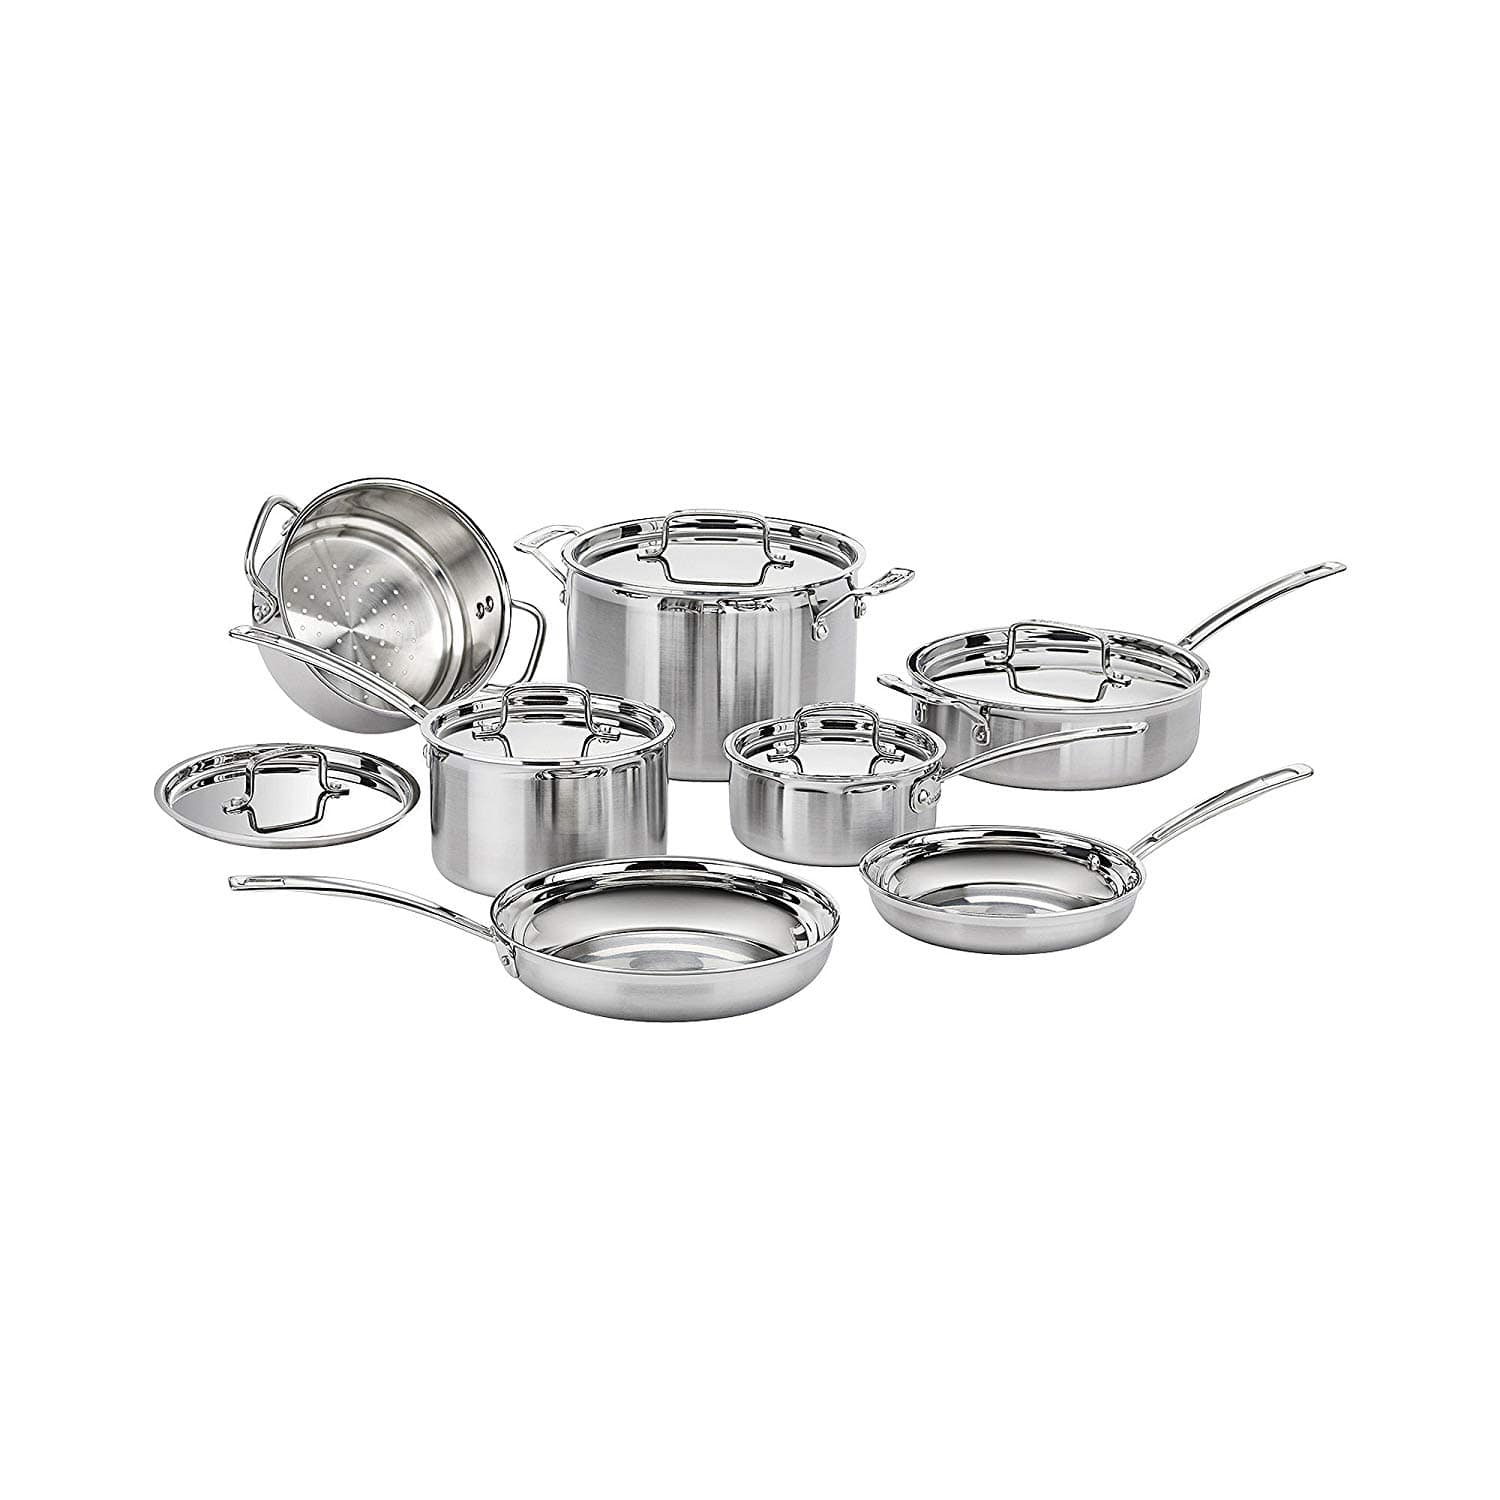 Cuisinart MCP-12N Multiclad Pro Stainless Steel 12-Piece Cookware Set $168 @ Amazon + Free Shipping